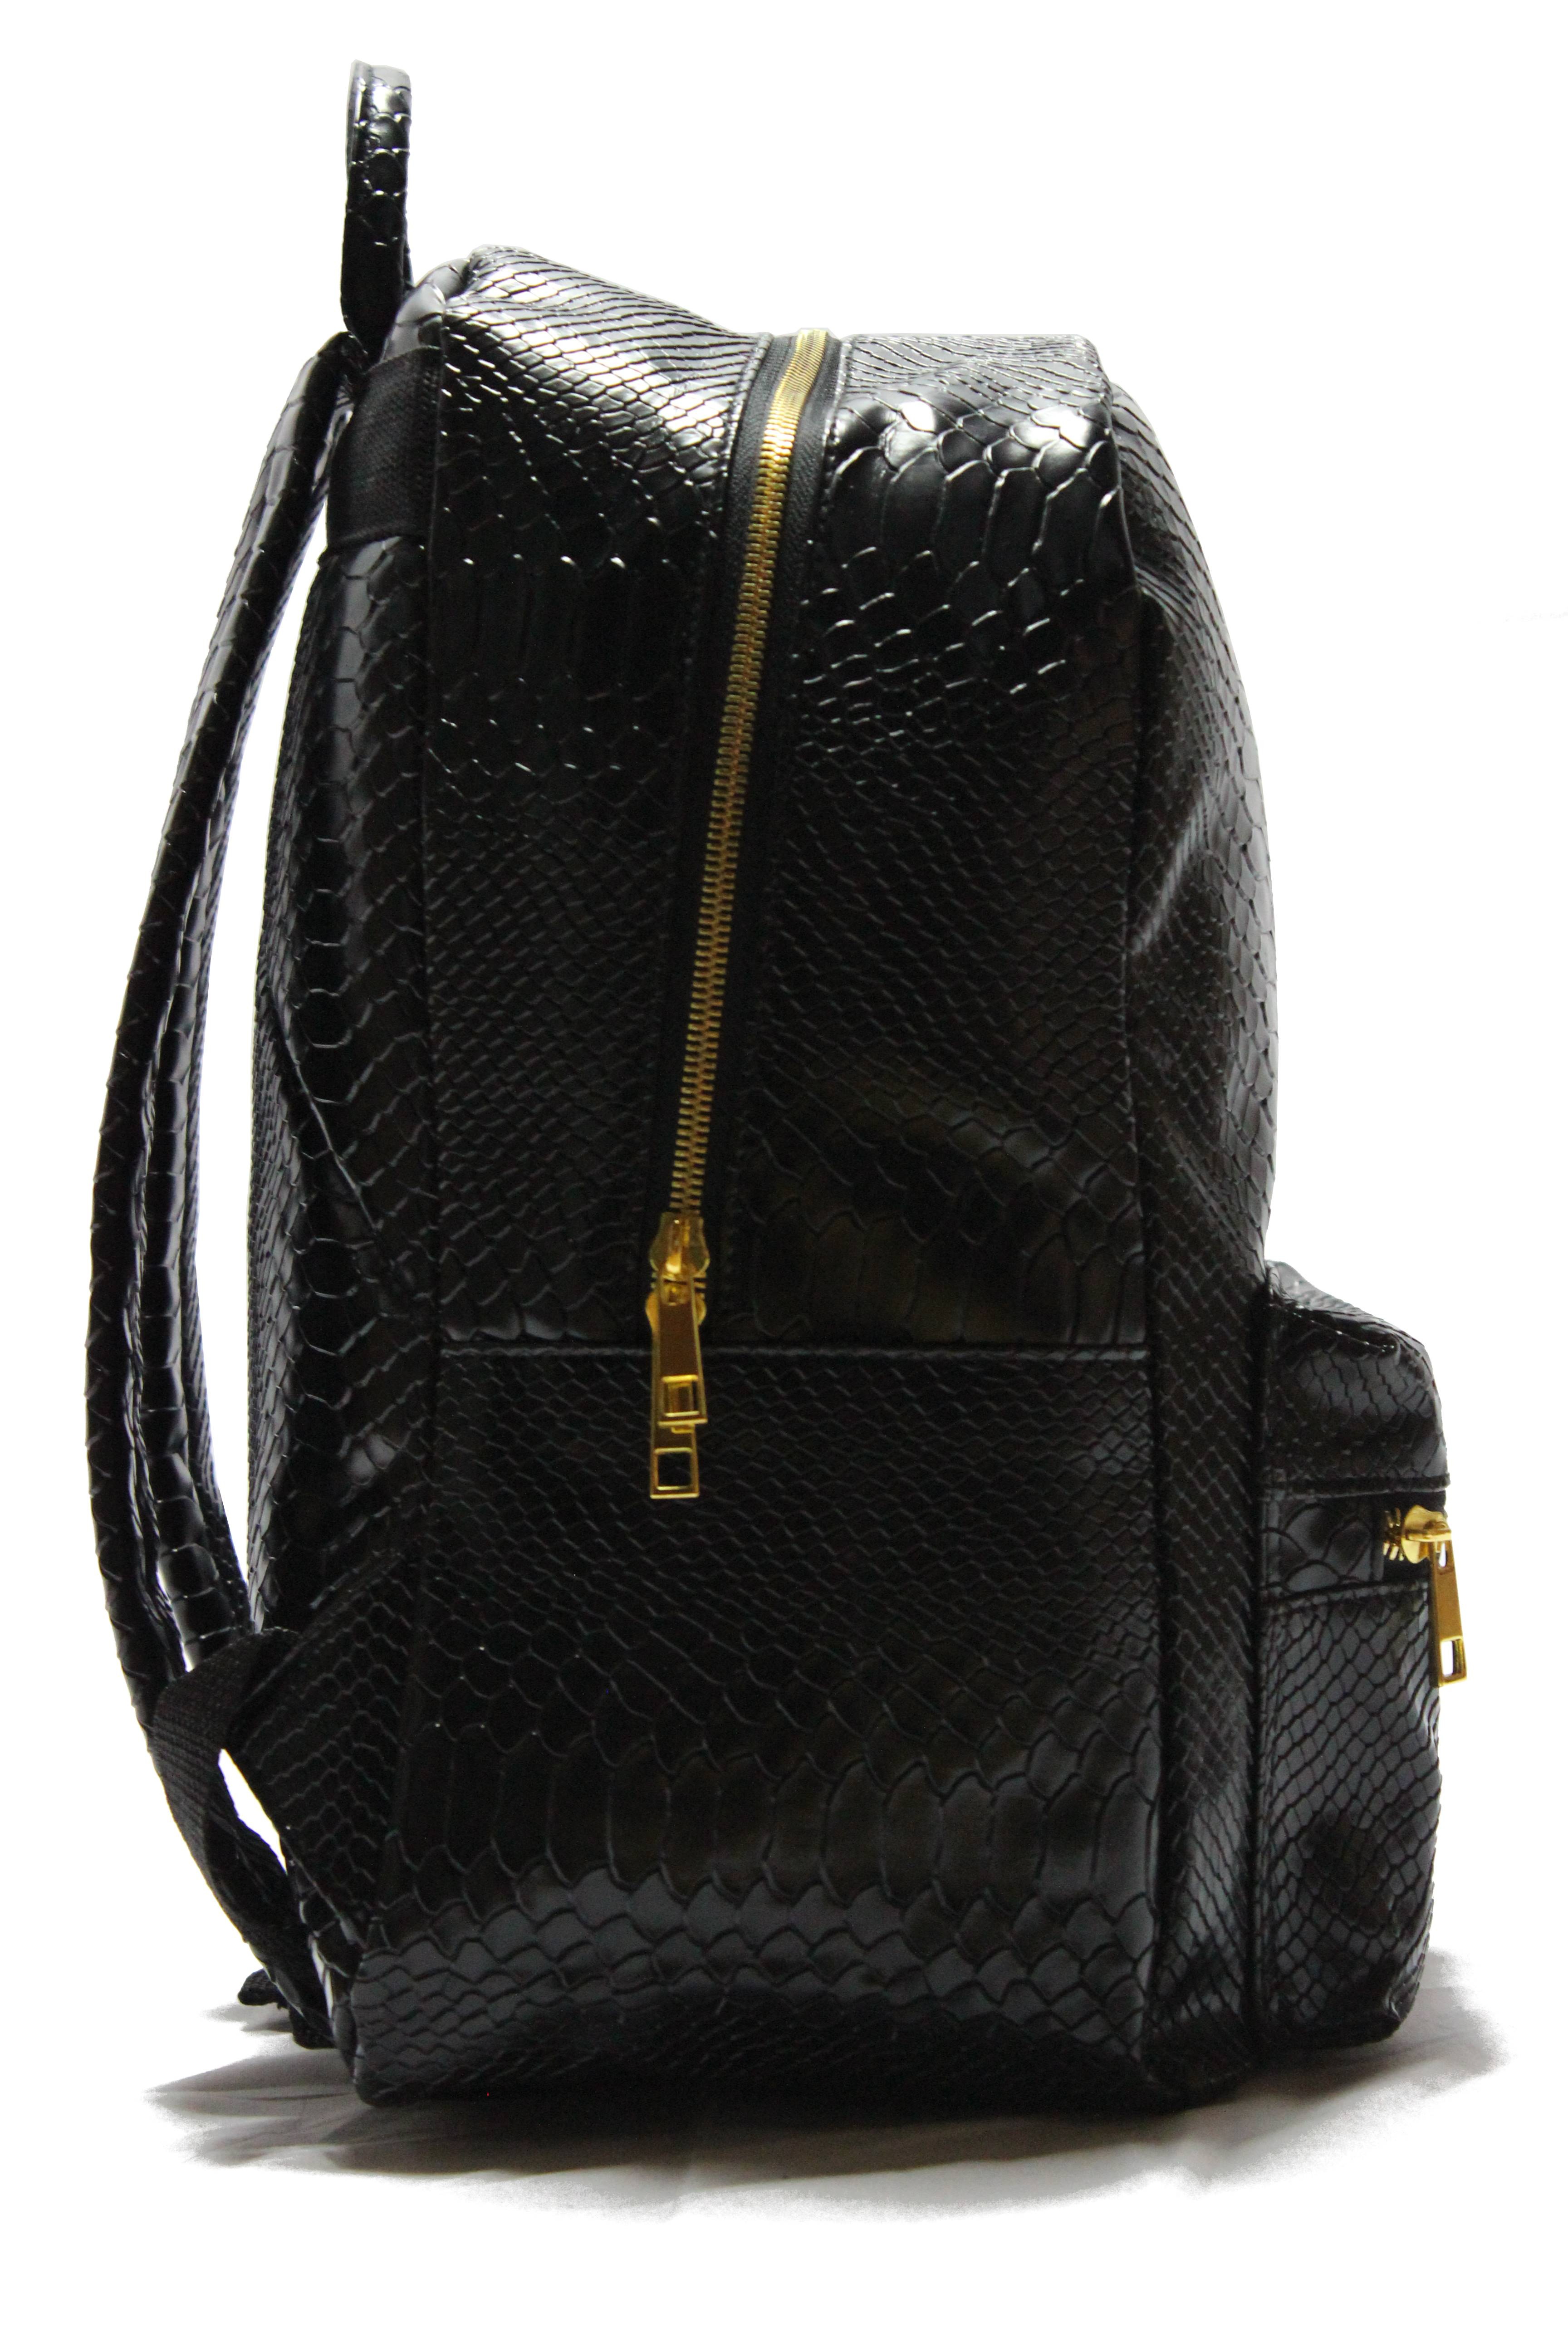 22ebc7f8cb05 Buy all black backpack   OFF38% Discounted